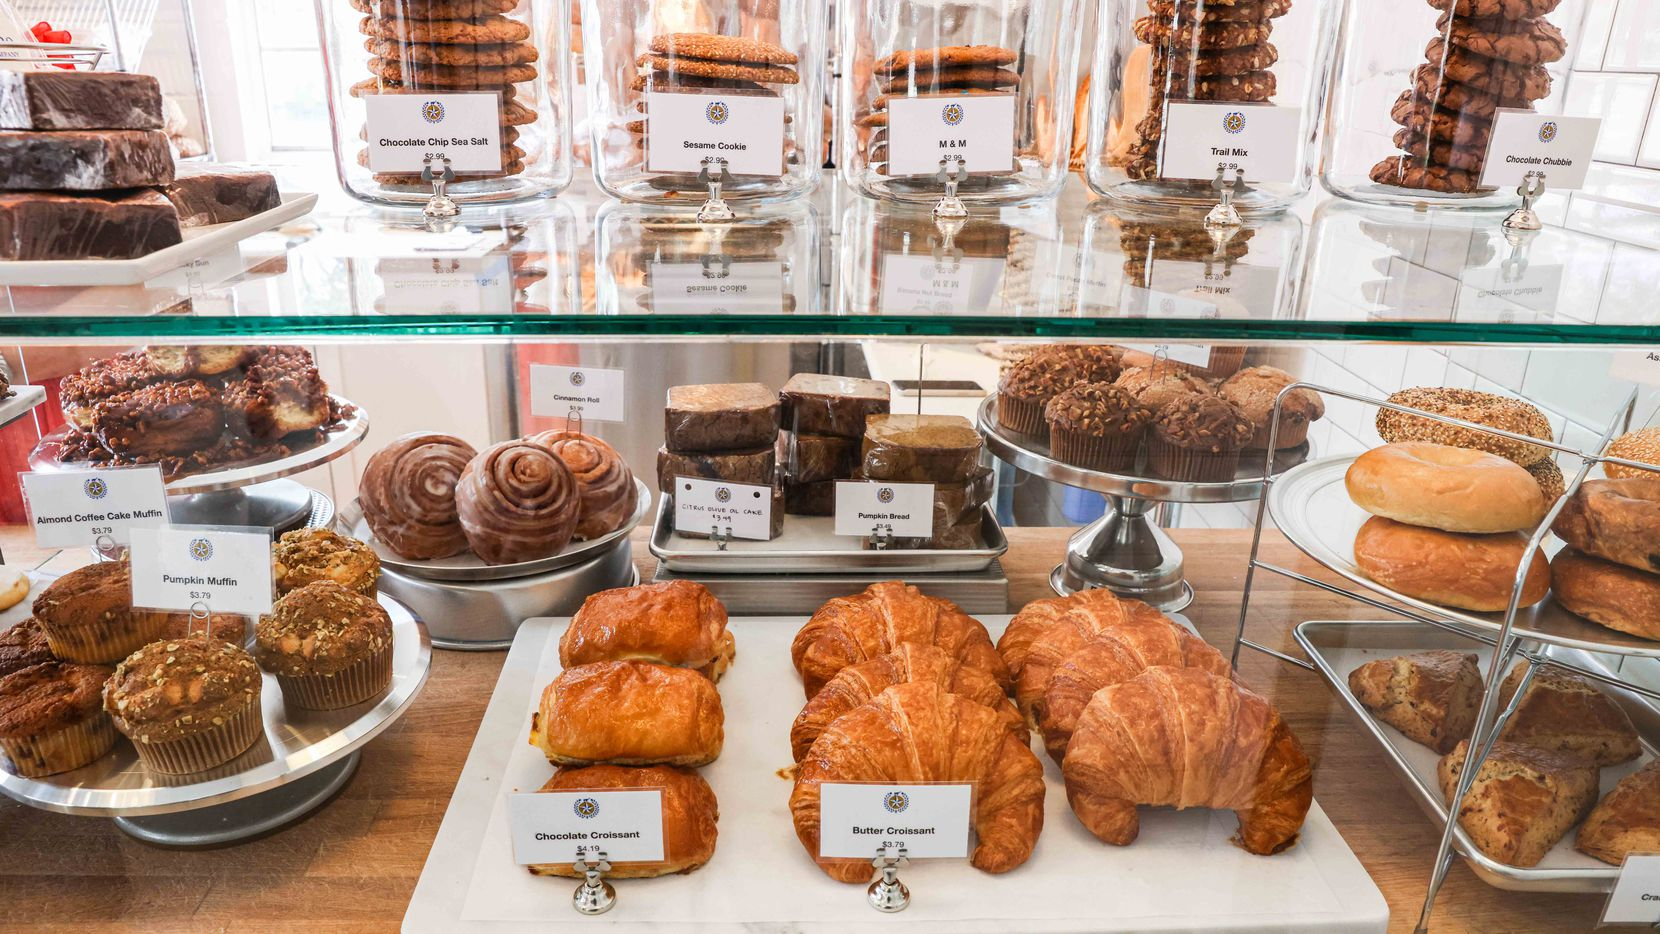 Empire Baking Company sells pastries, sandwiches and more on University Boulevard in East Dallas.